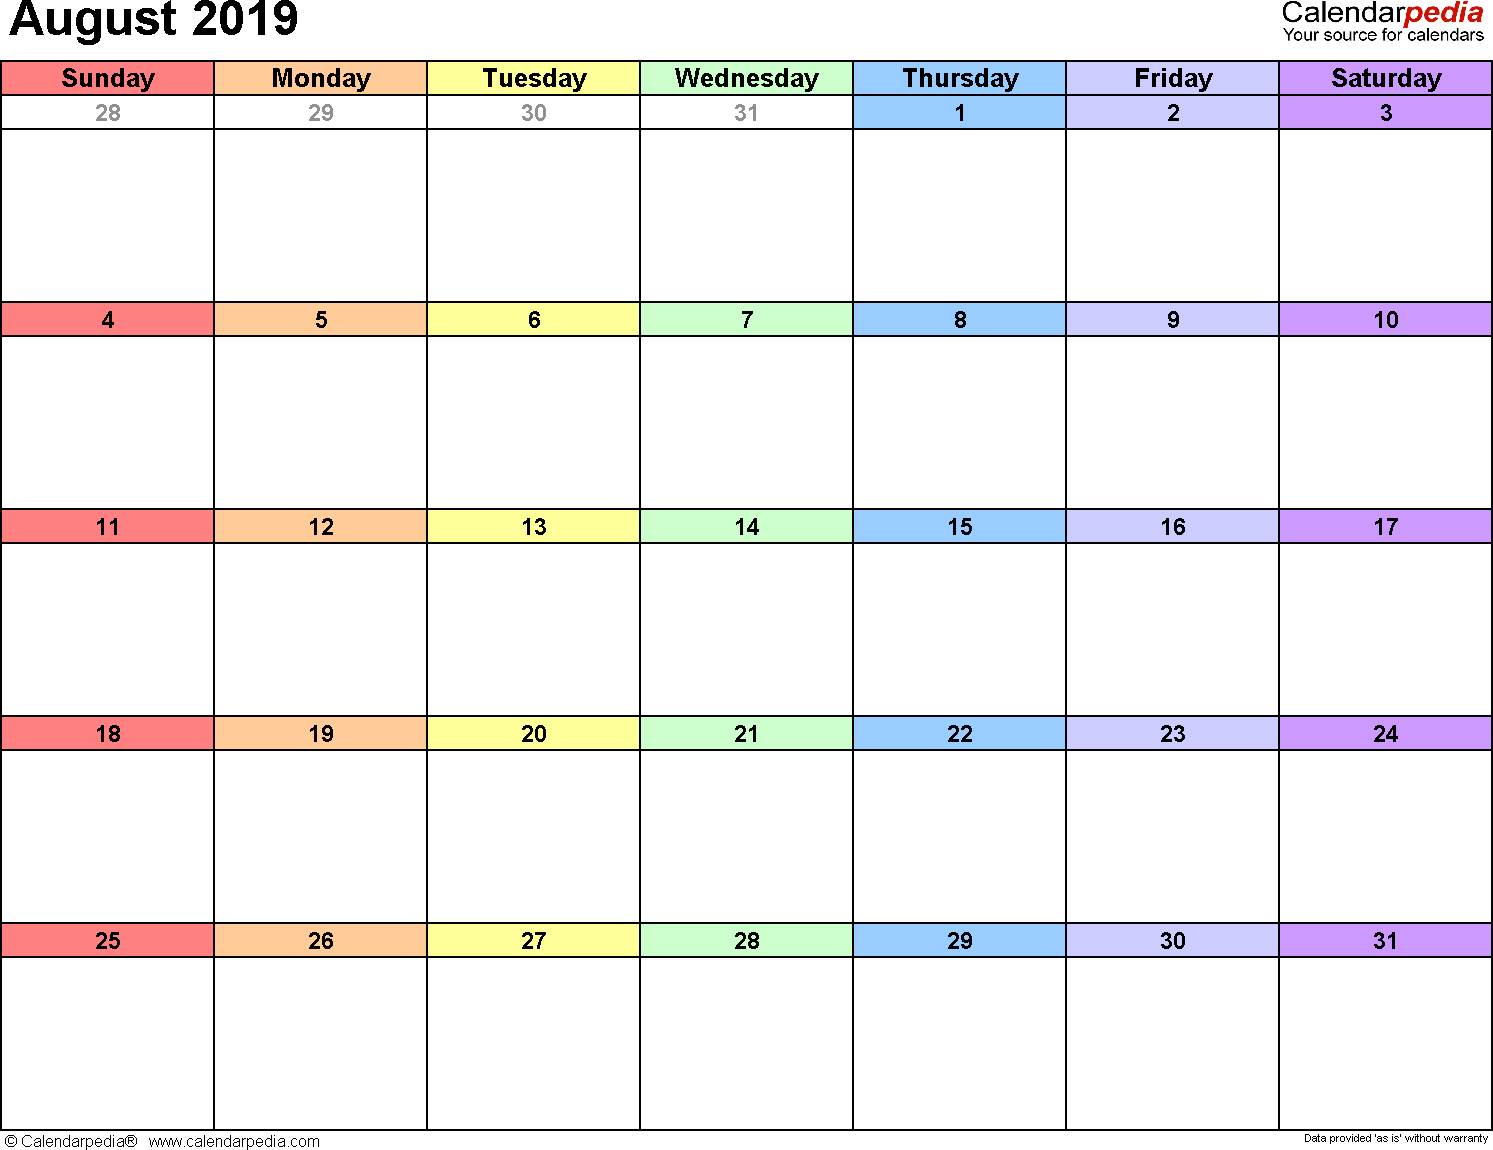 Calendarpedia - Your Source For Calendars within Printable Monthly Calendar Template Aug